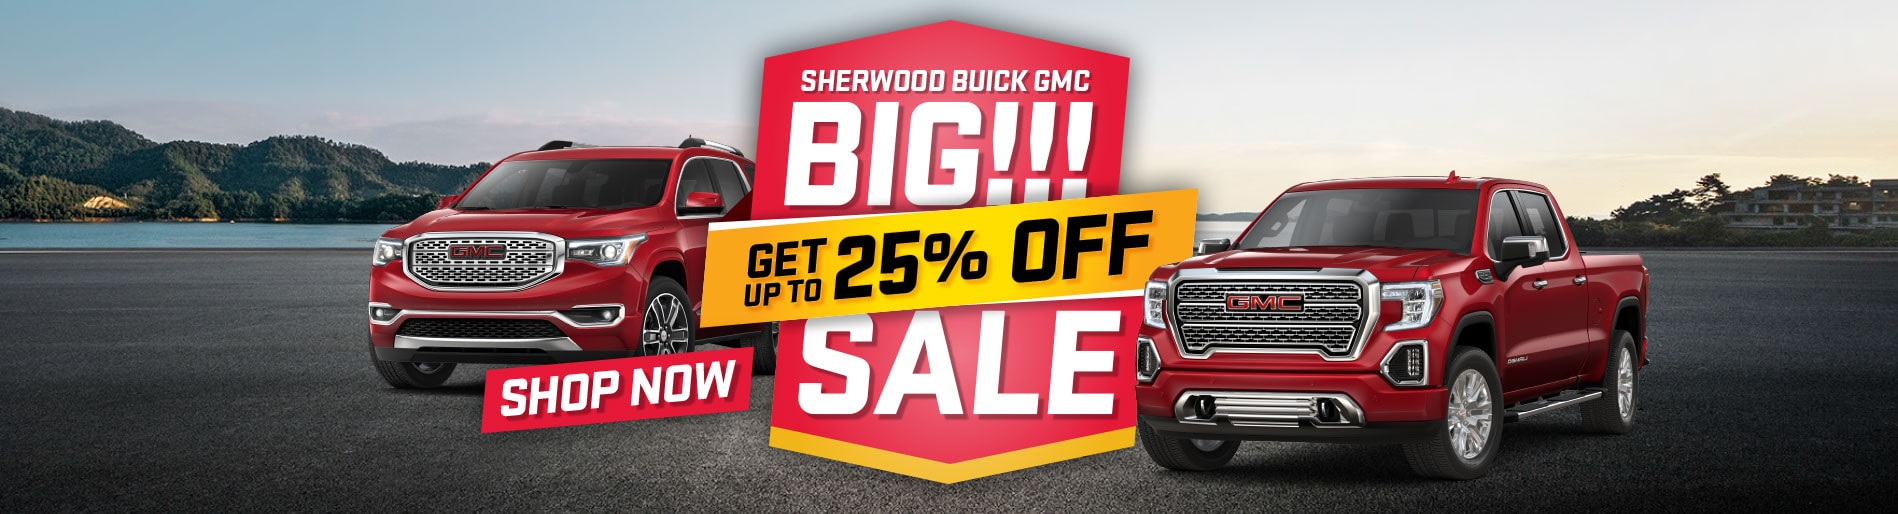 Sherwood Buick GMC | Car